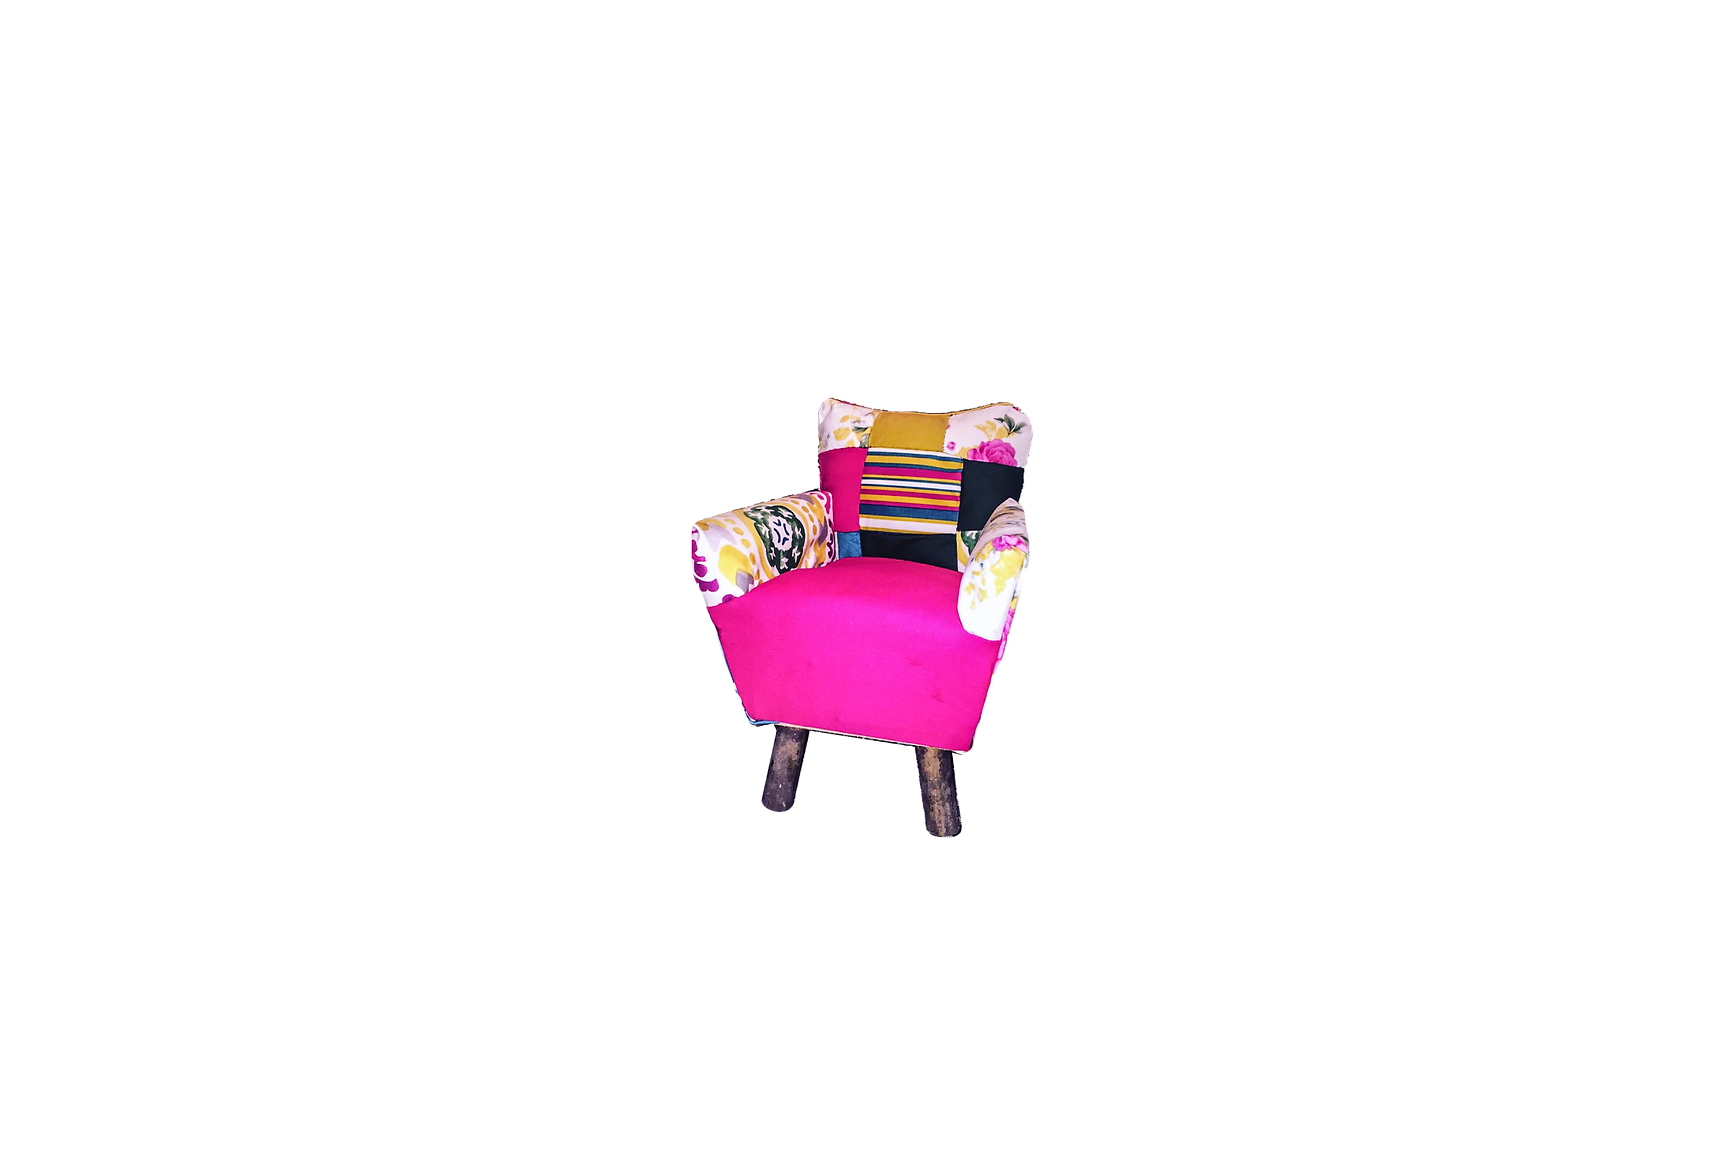 chair_edited.png